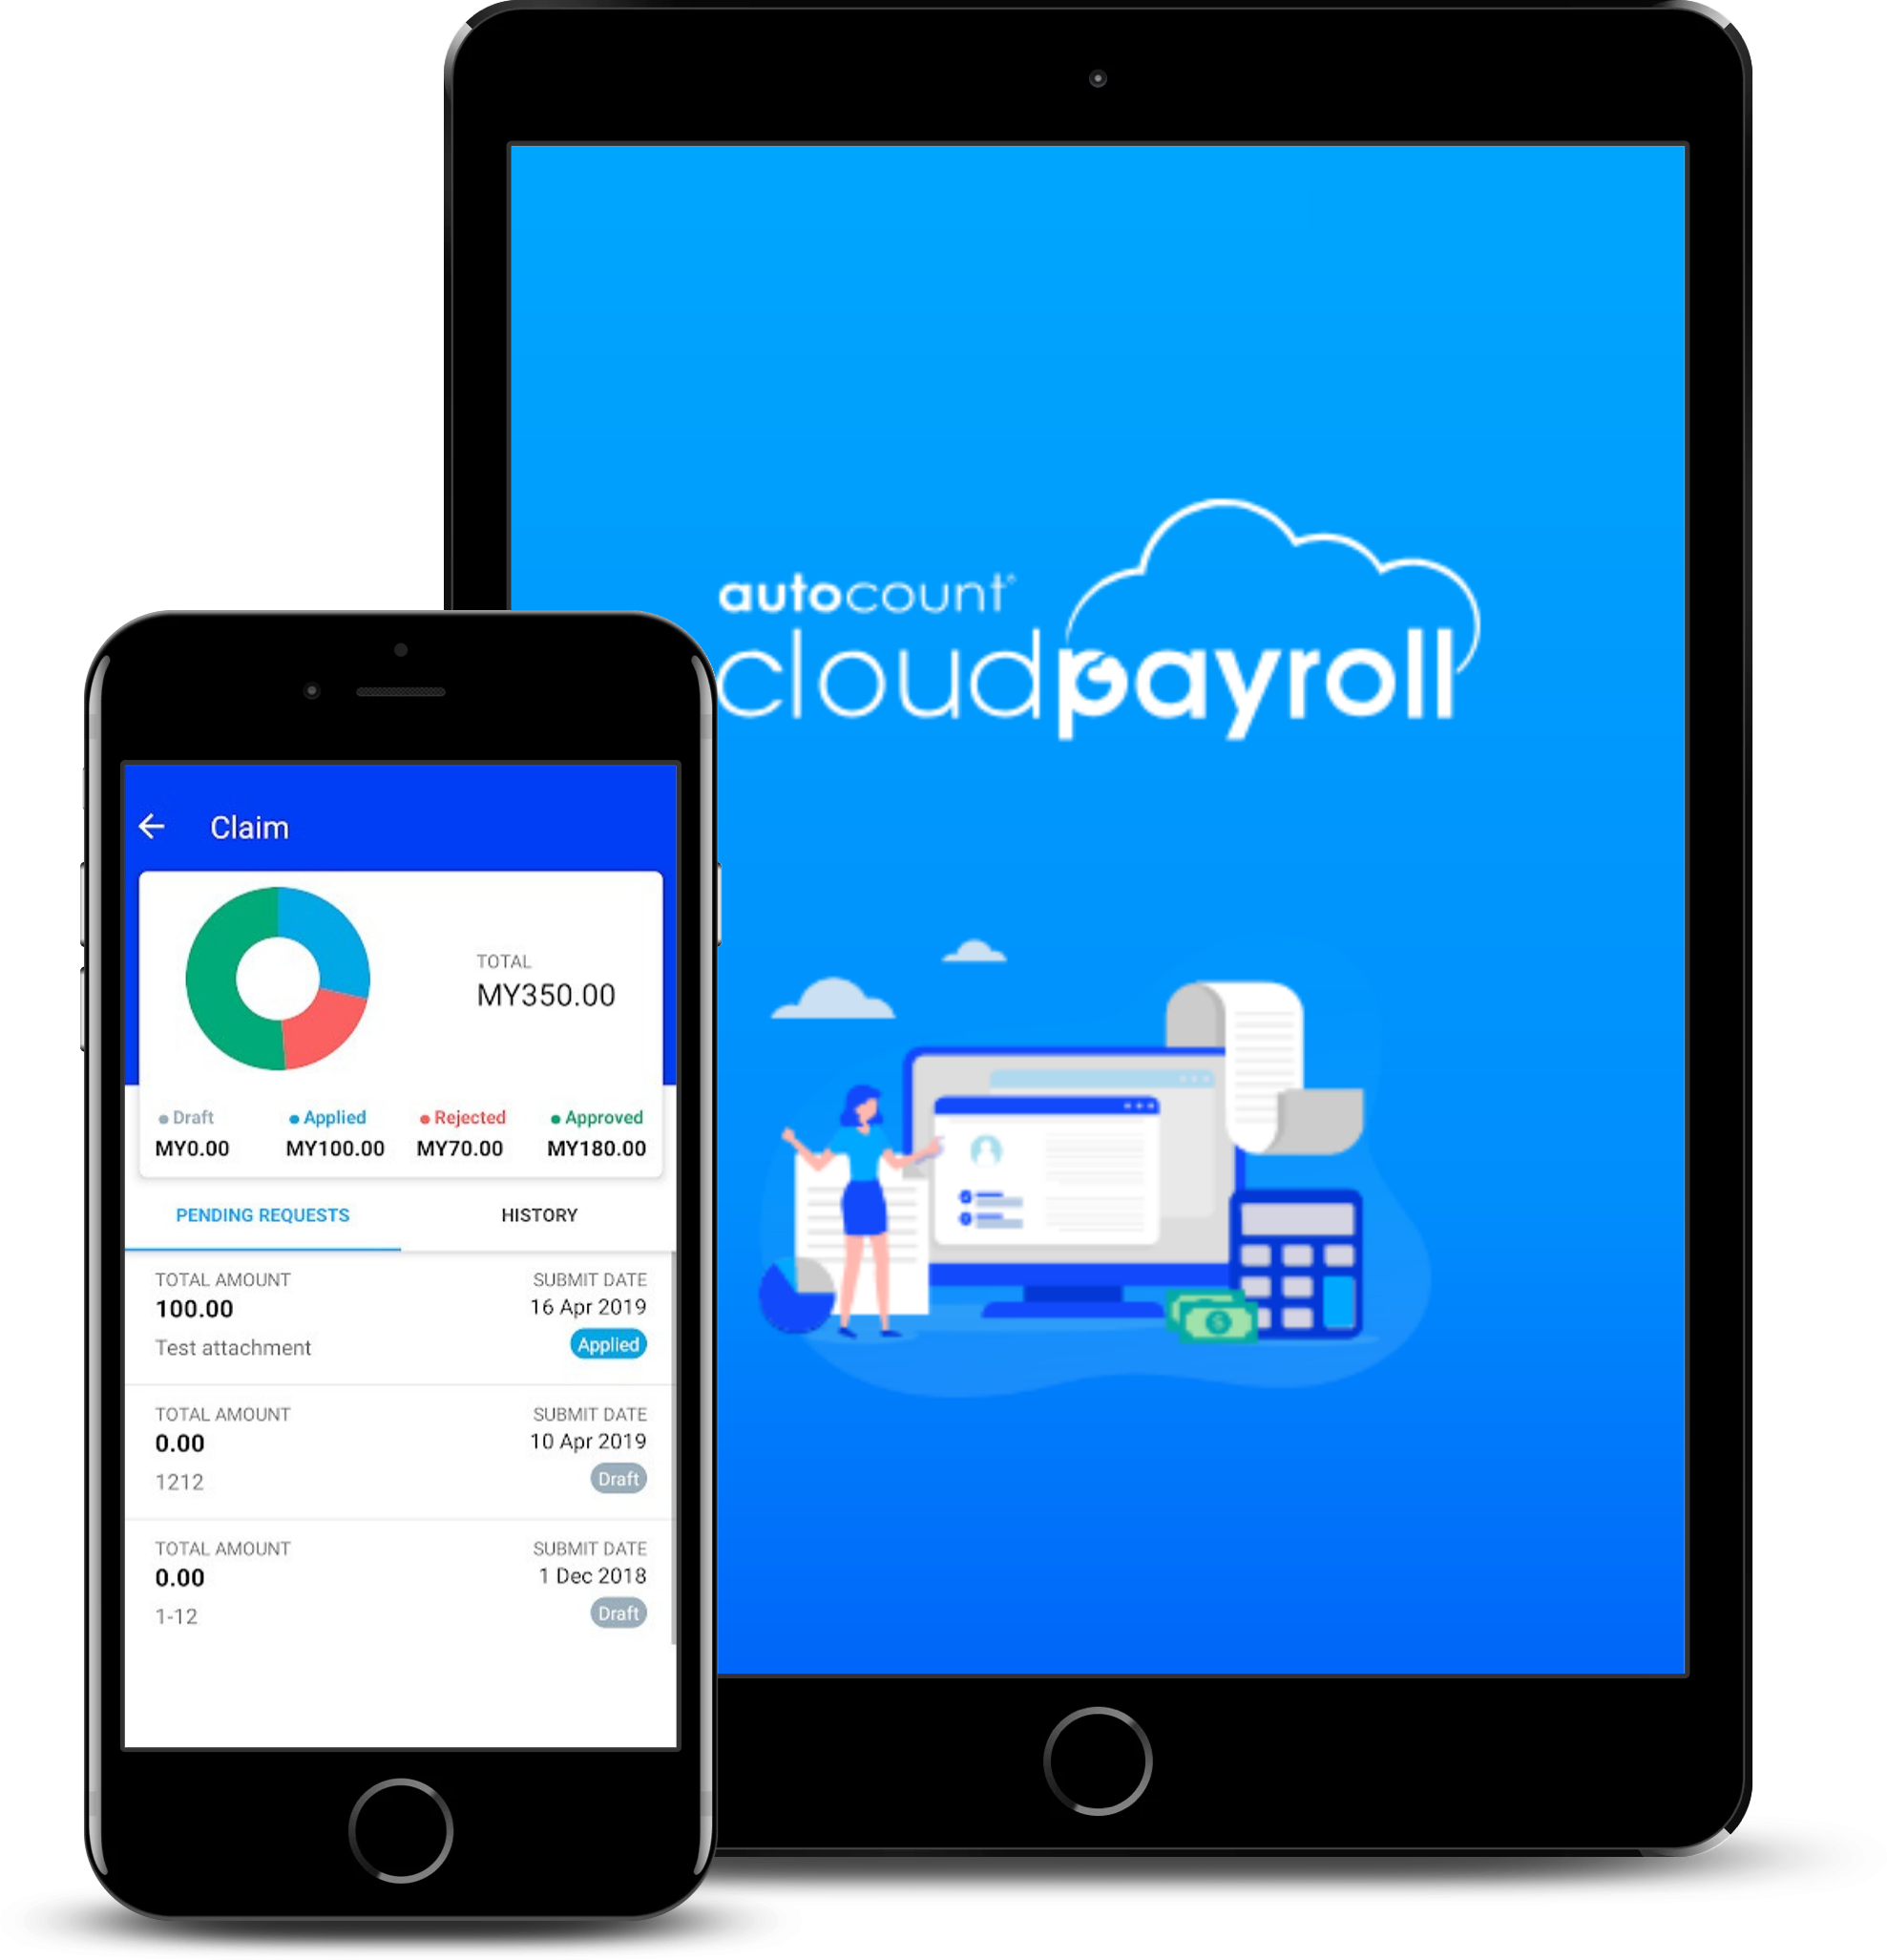 autocount cloud payroll  u0026 hr